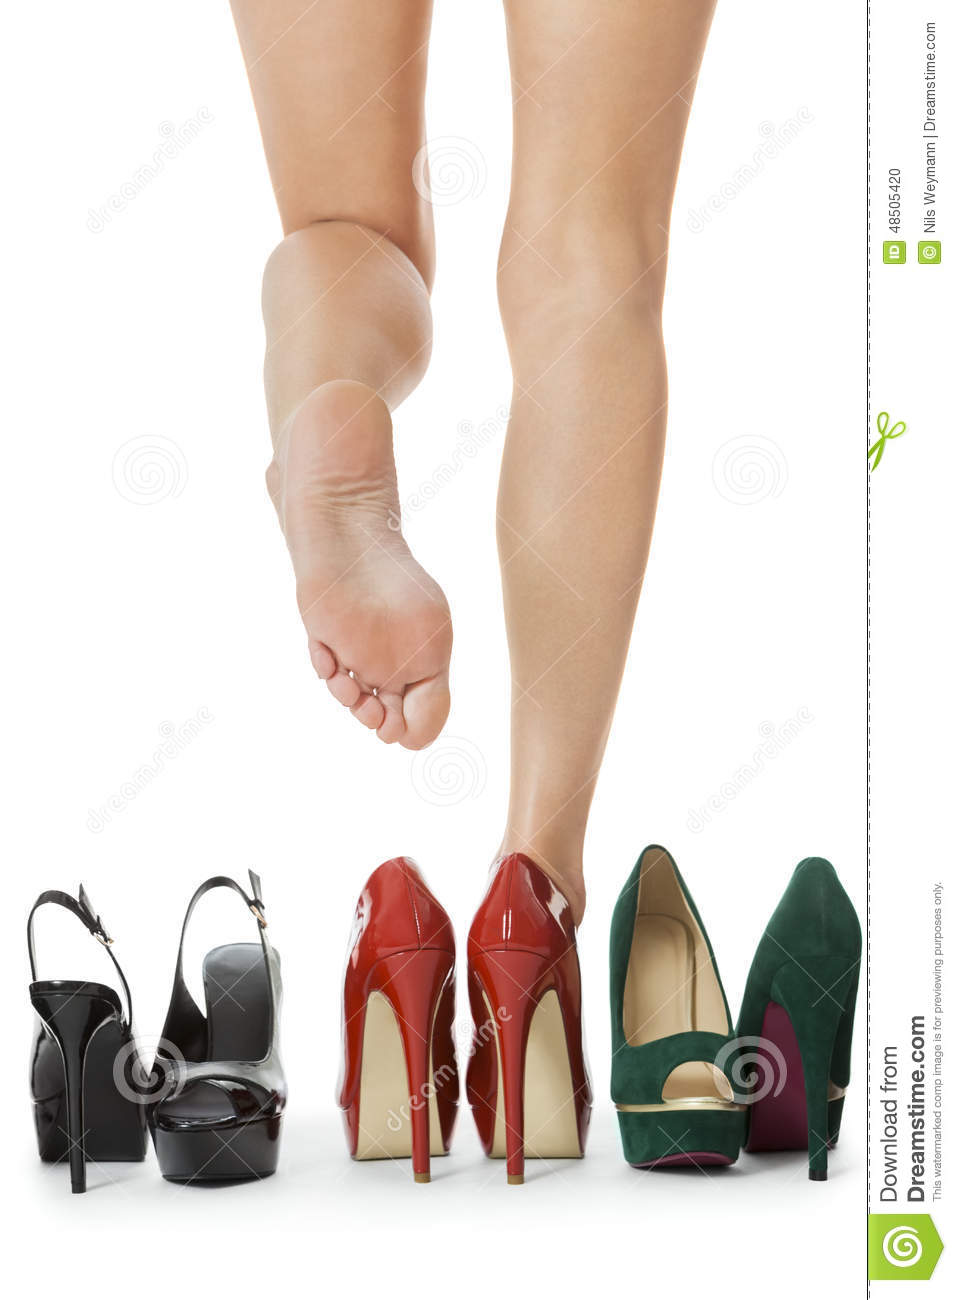 relationship between high heel and women High heels of a certain height can prematurely age the knee joints and increase a woman's risk of developing osteoarthritis.